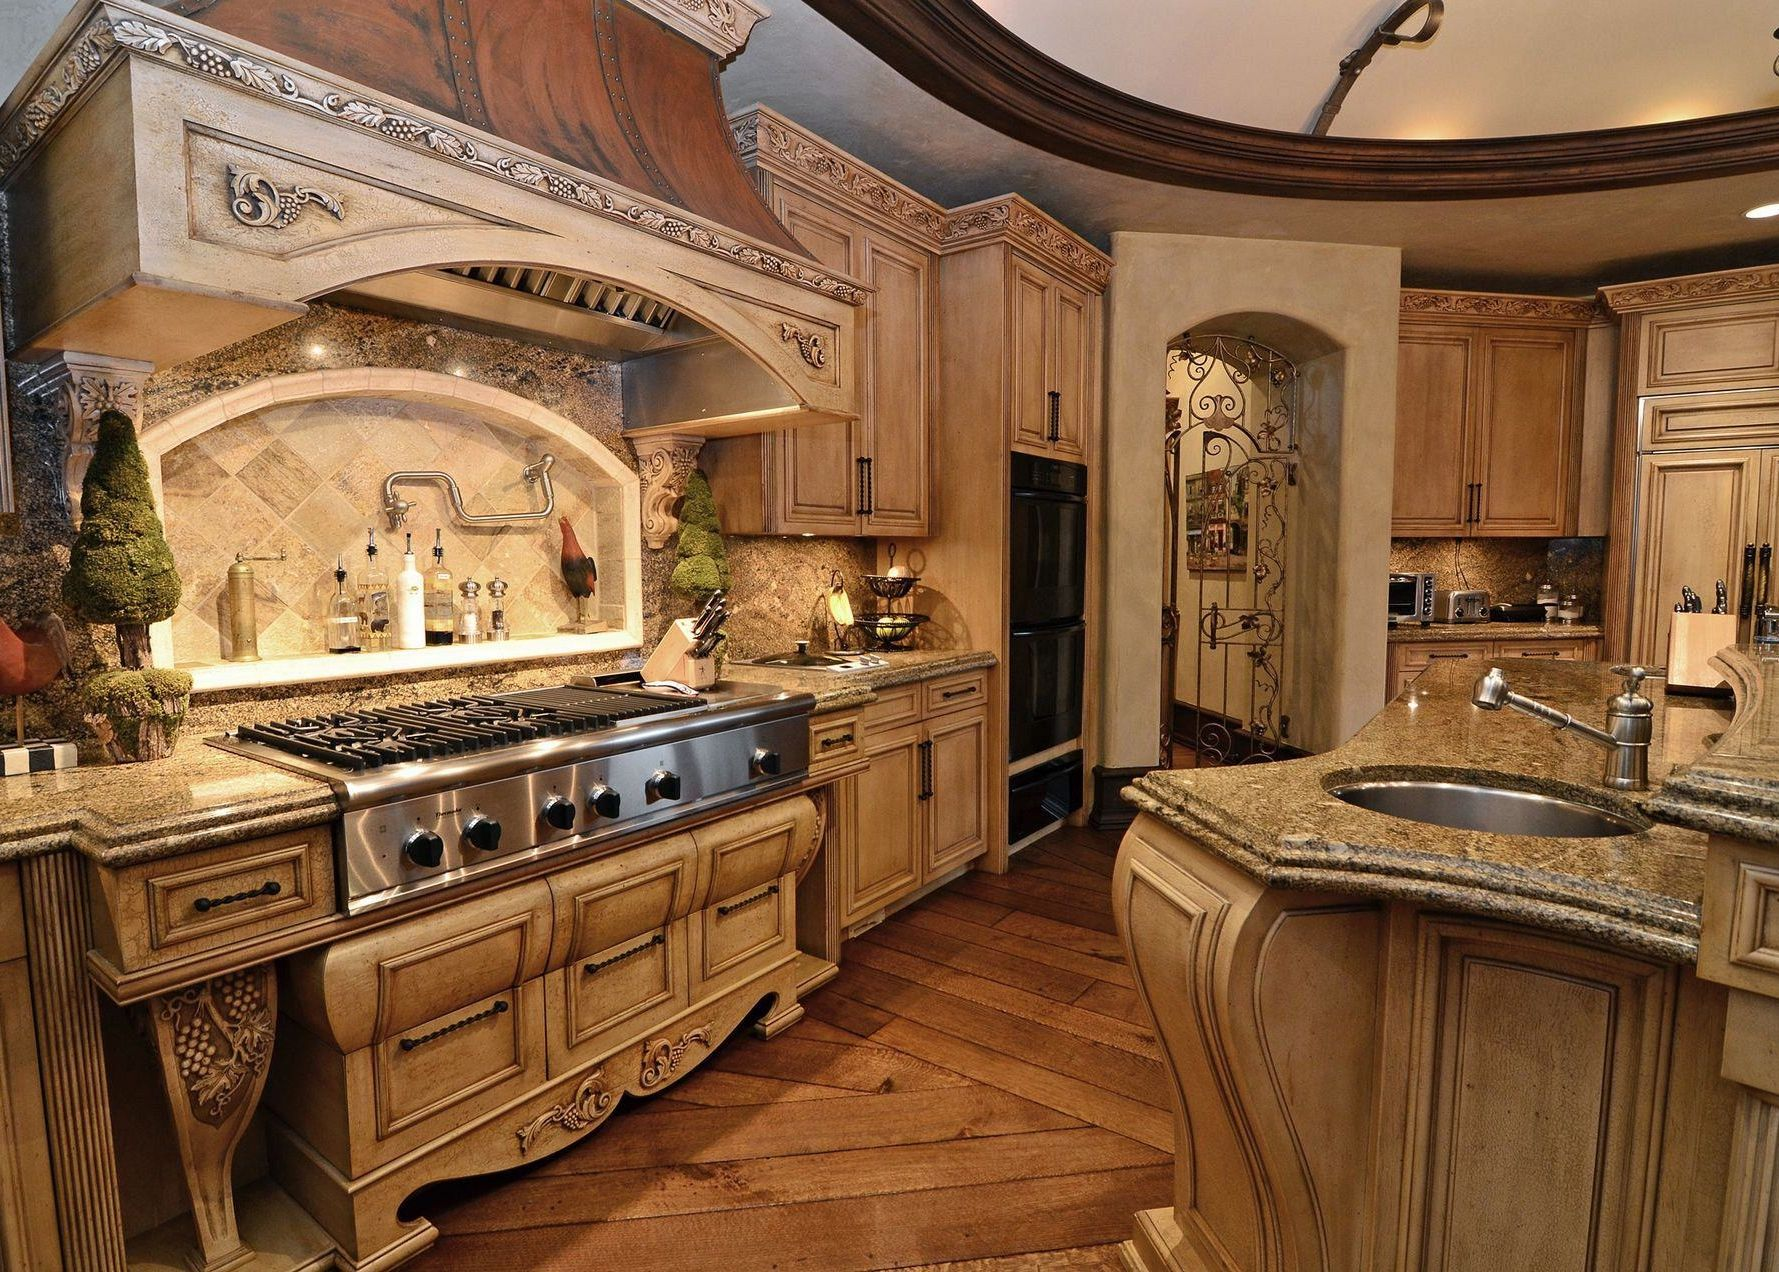 Old World Kitchens Interior And Exterior Design Ideas Old